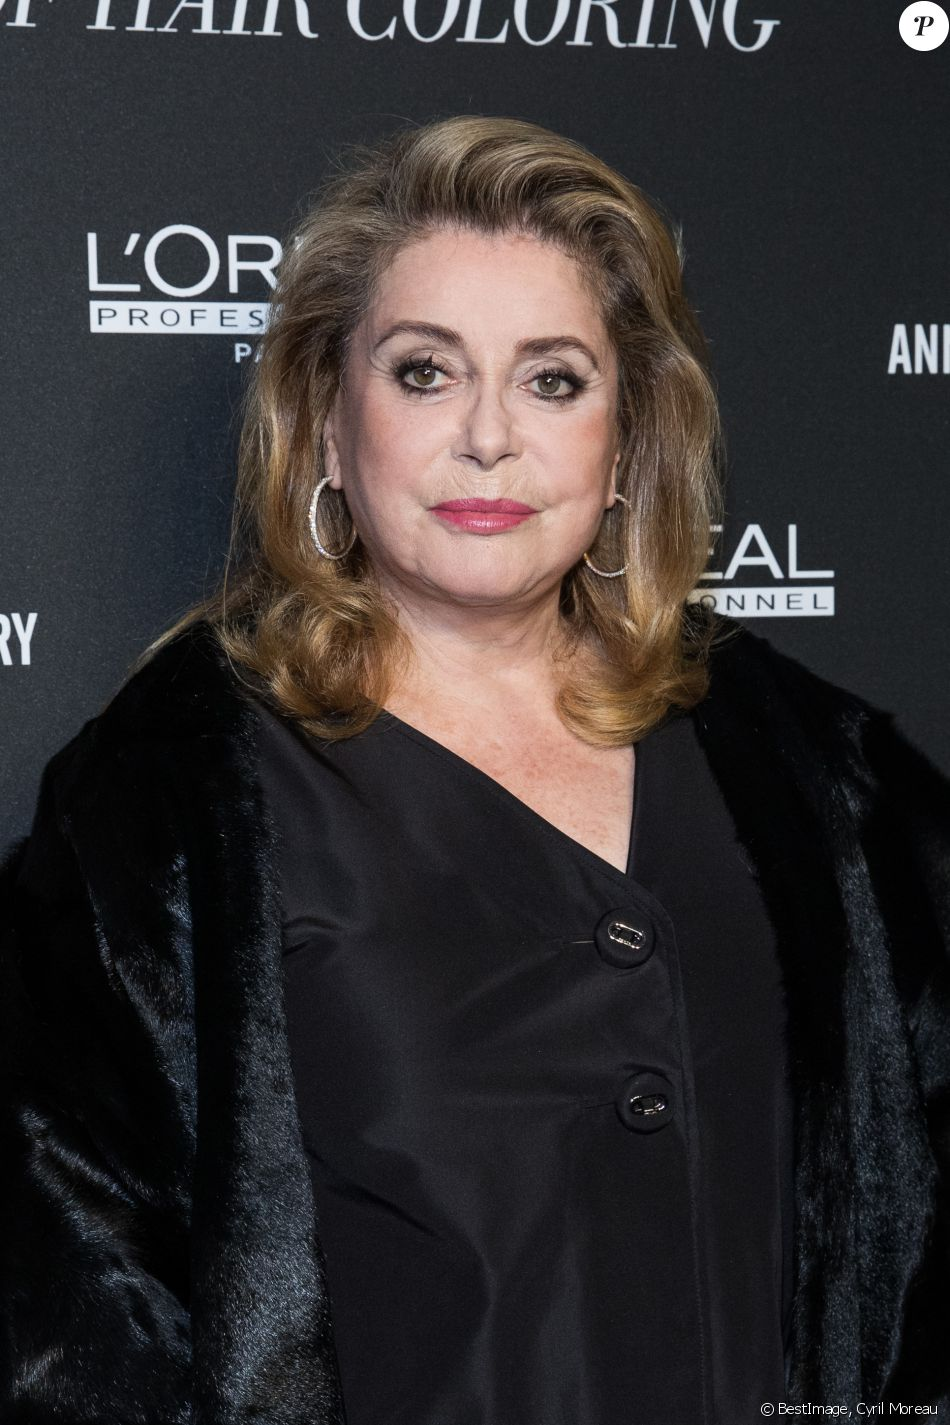 "Catherine Deneuve au photocall du 110e anniversaire de l'Oréal Professionnel ""La French - Art Of Hair Coloring au Carrousel du Louvre à Paris, France, le 24 mars 2019. © Cyril Moreau/Bestimage"